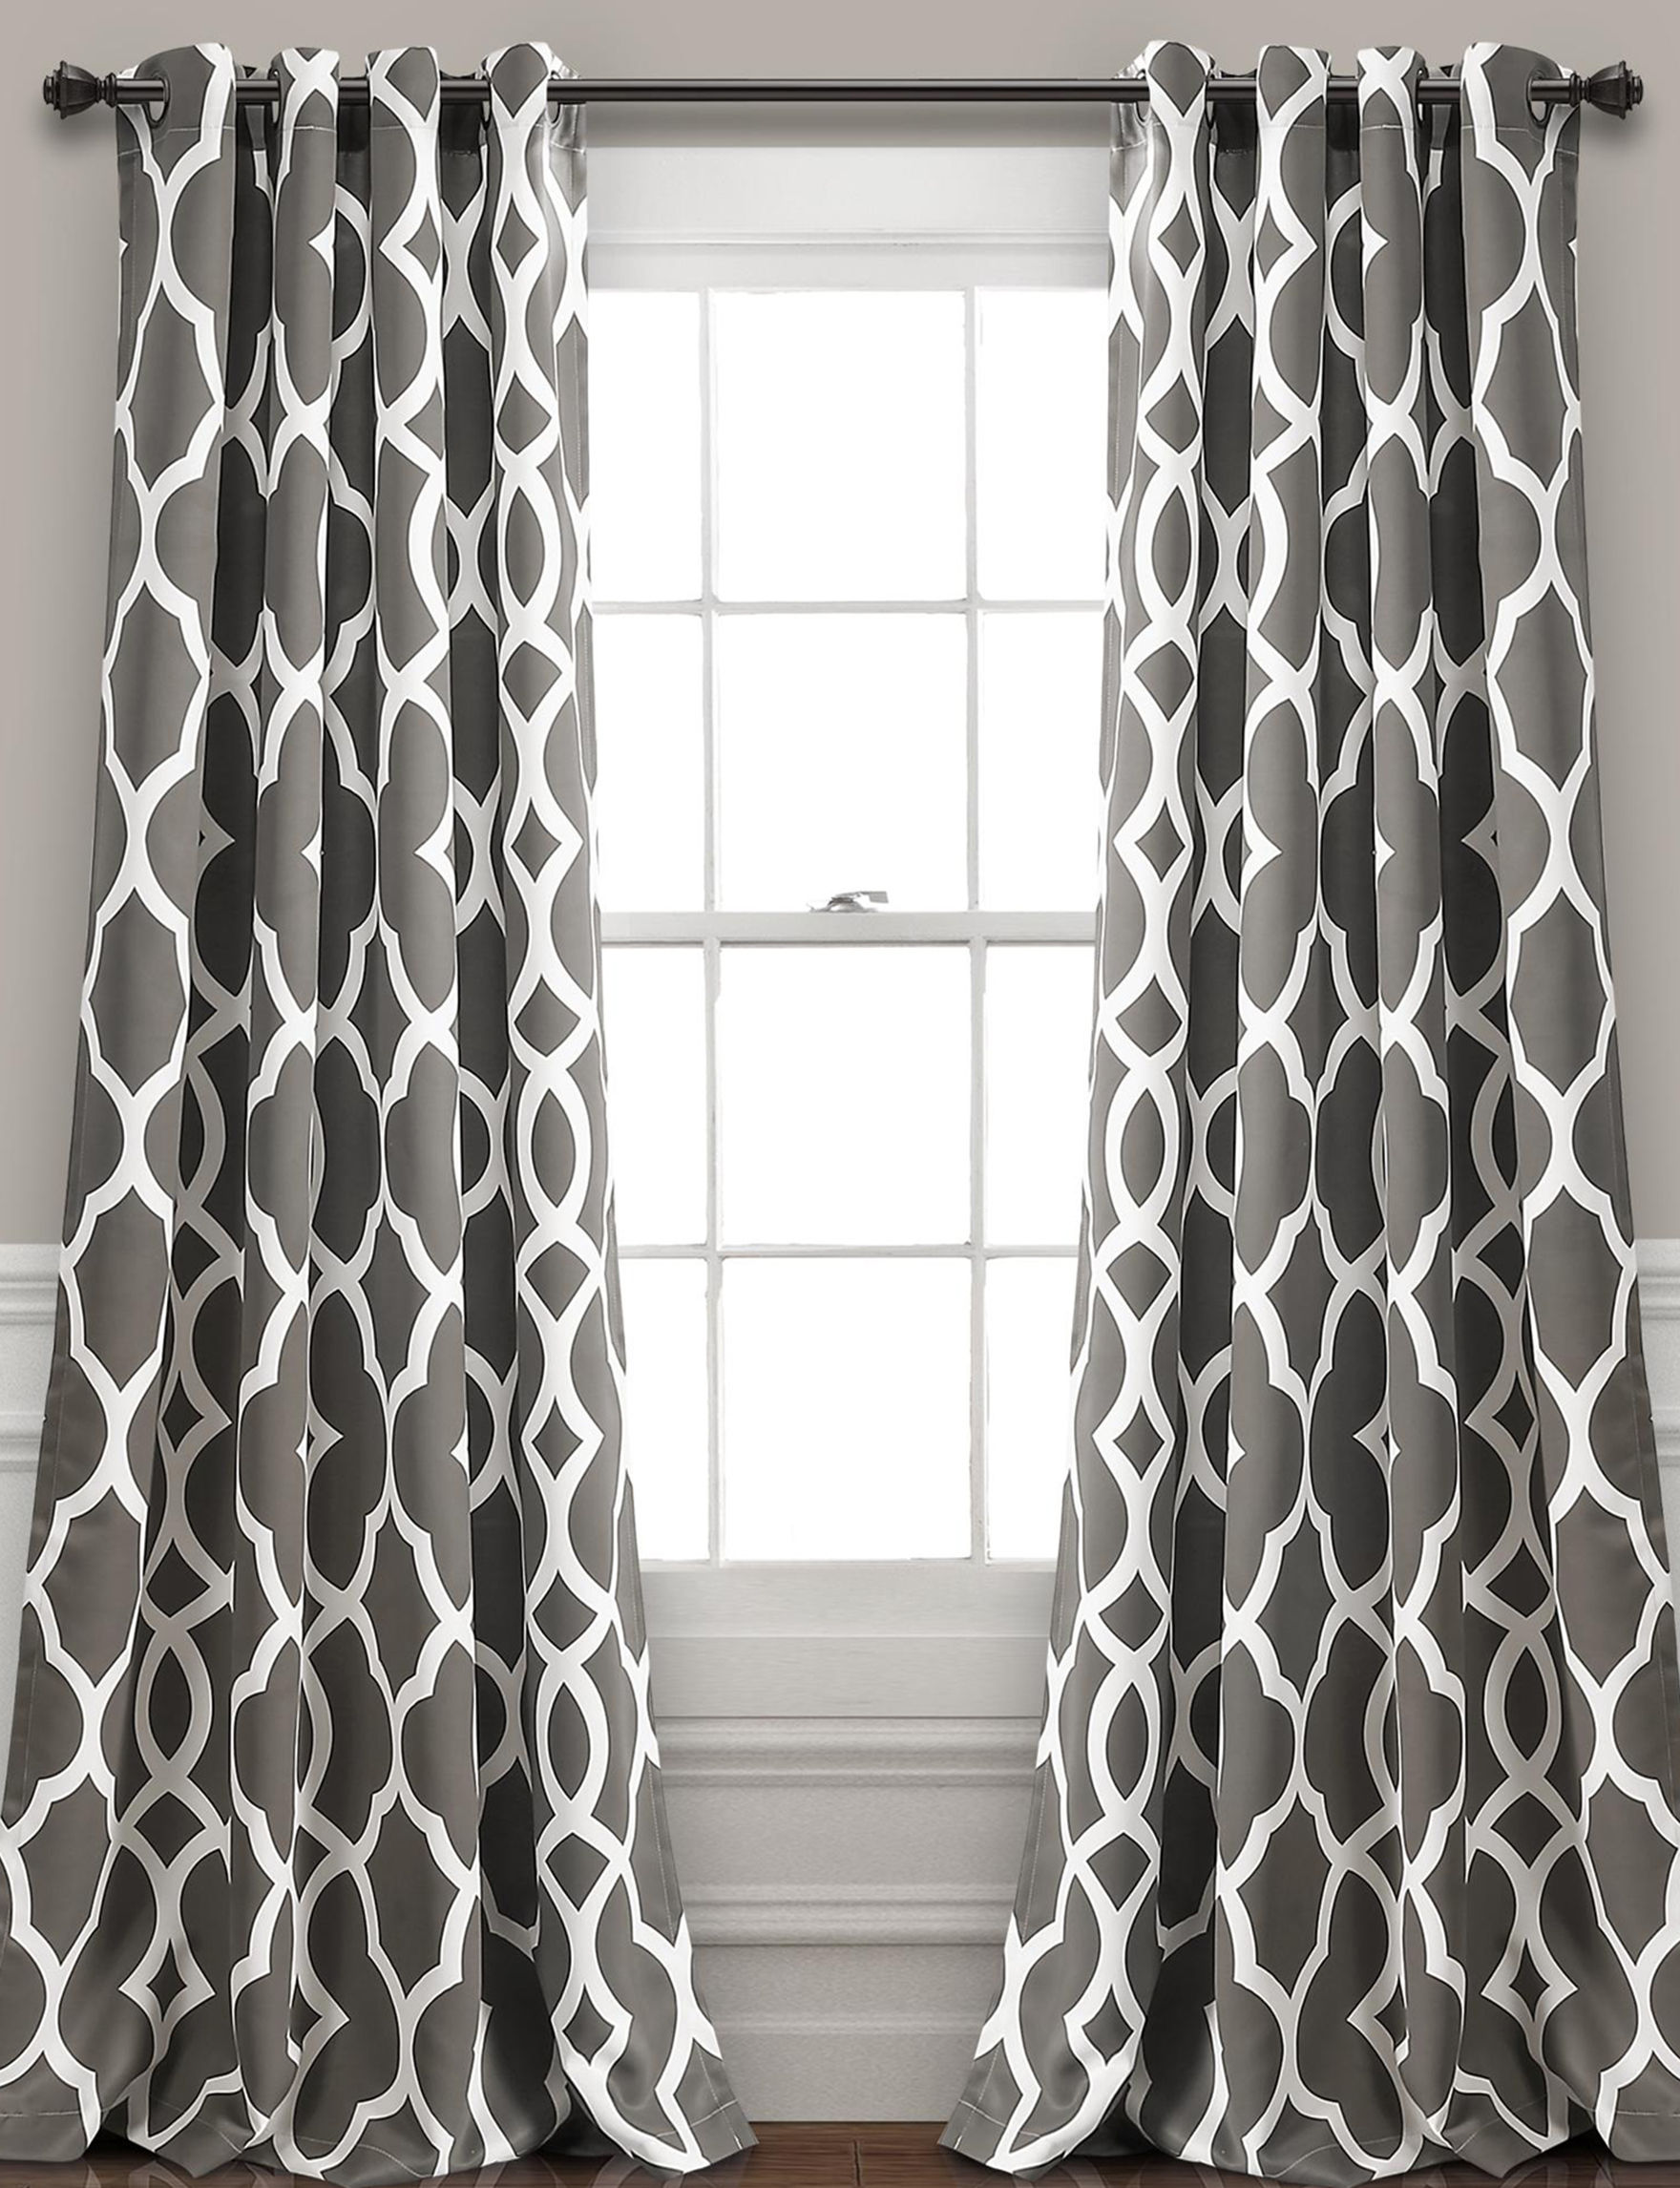 Lush Decor Grey / White Curtains & Drapes Window Treatments